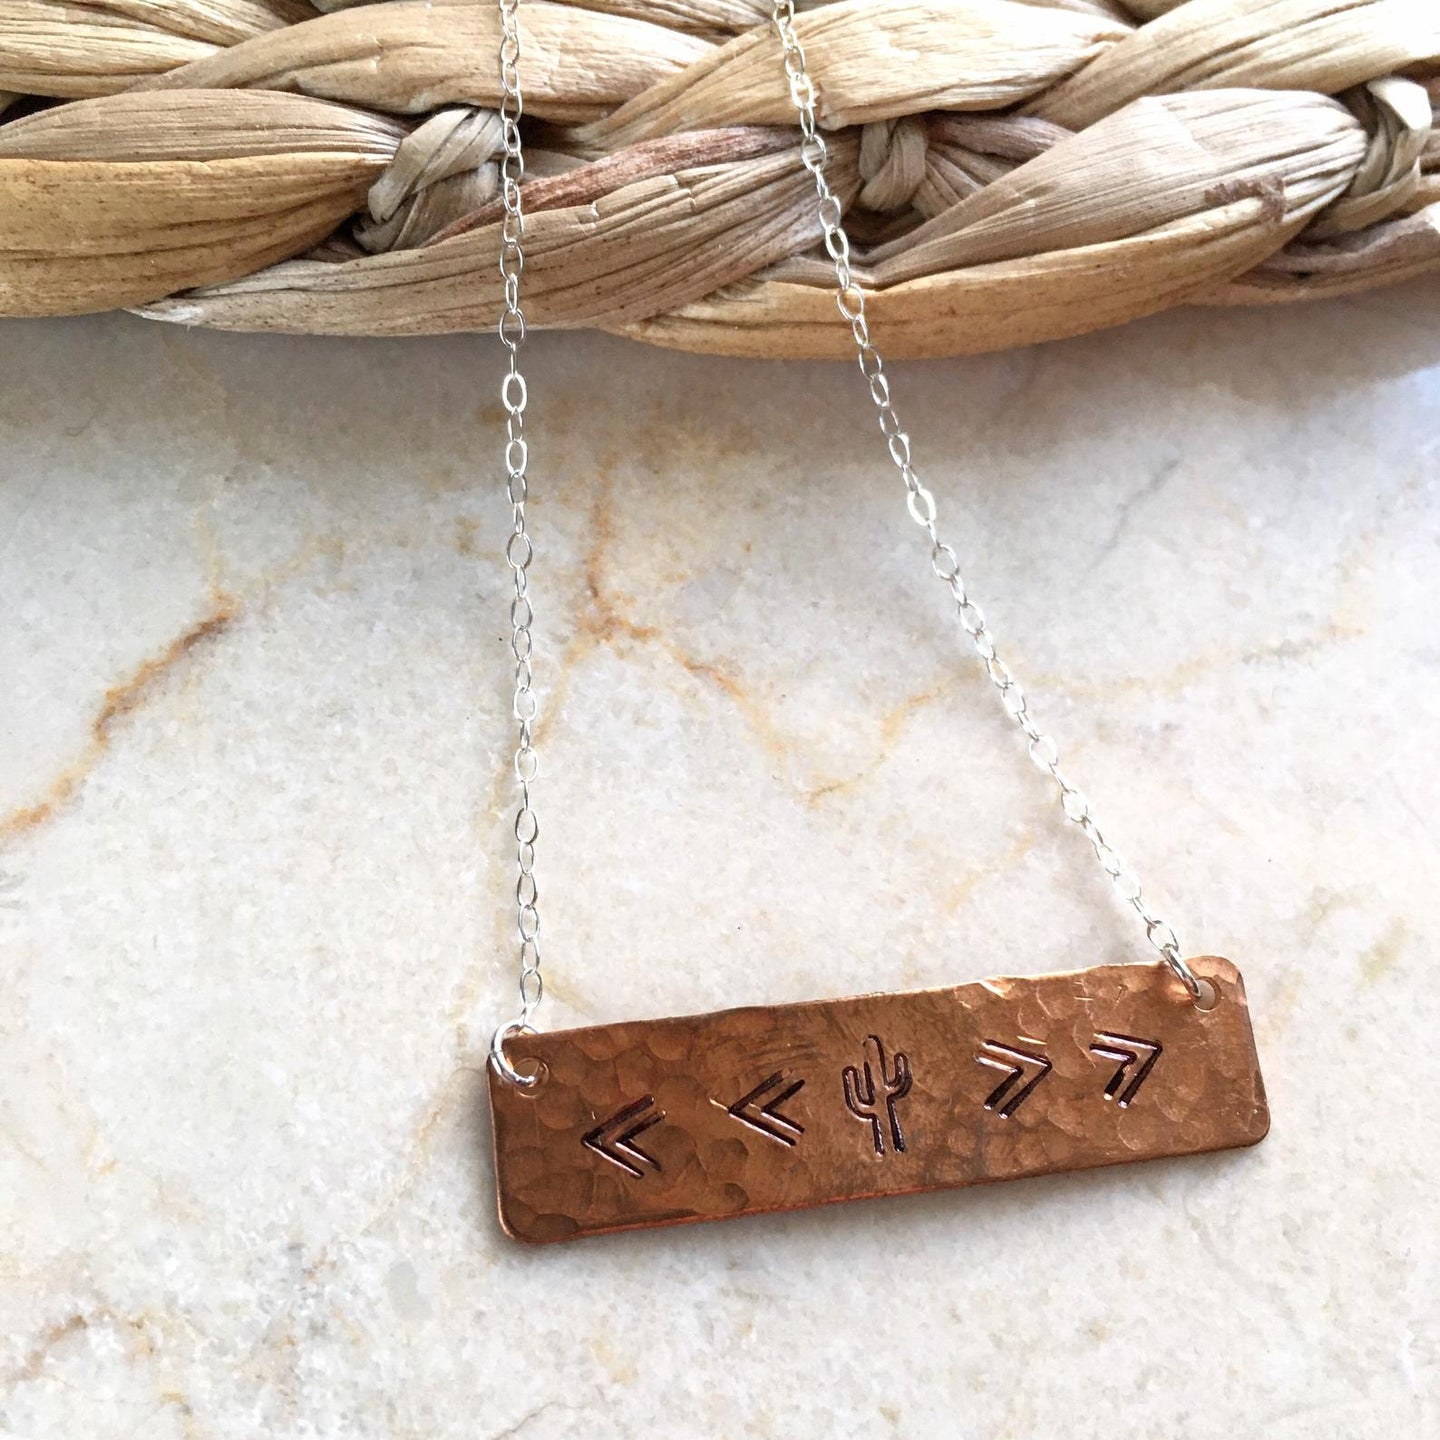 Hammered Rectangle Copper Bar with Cactus Stamp on Sterling Silver Chain